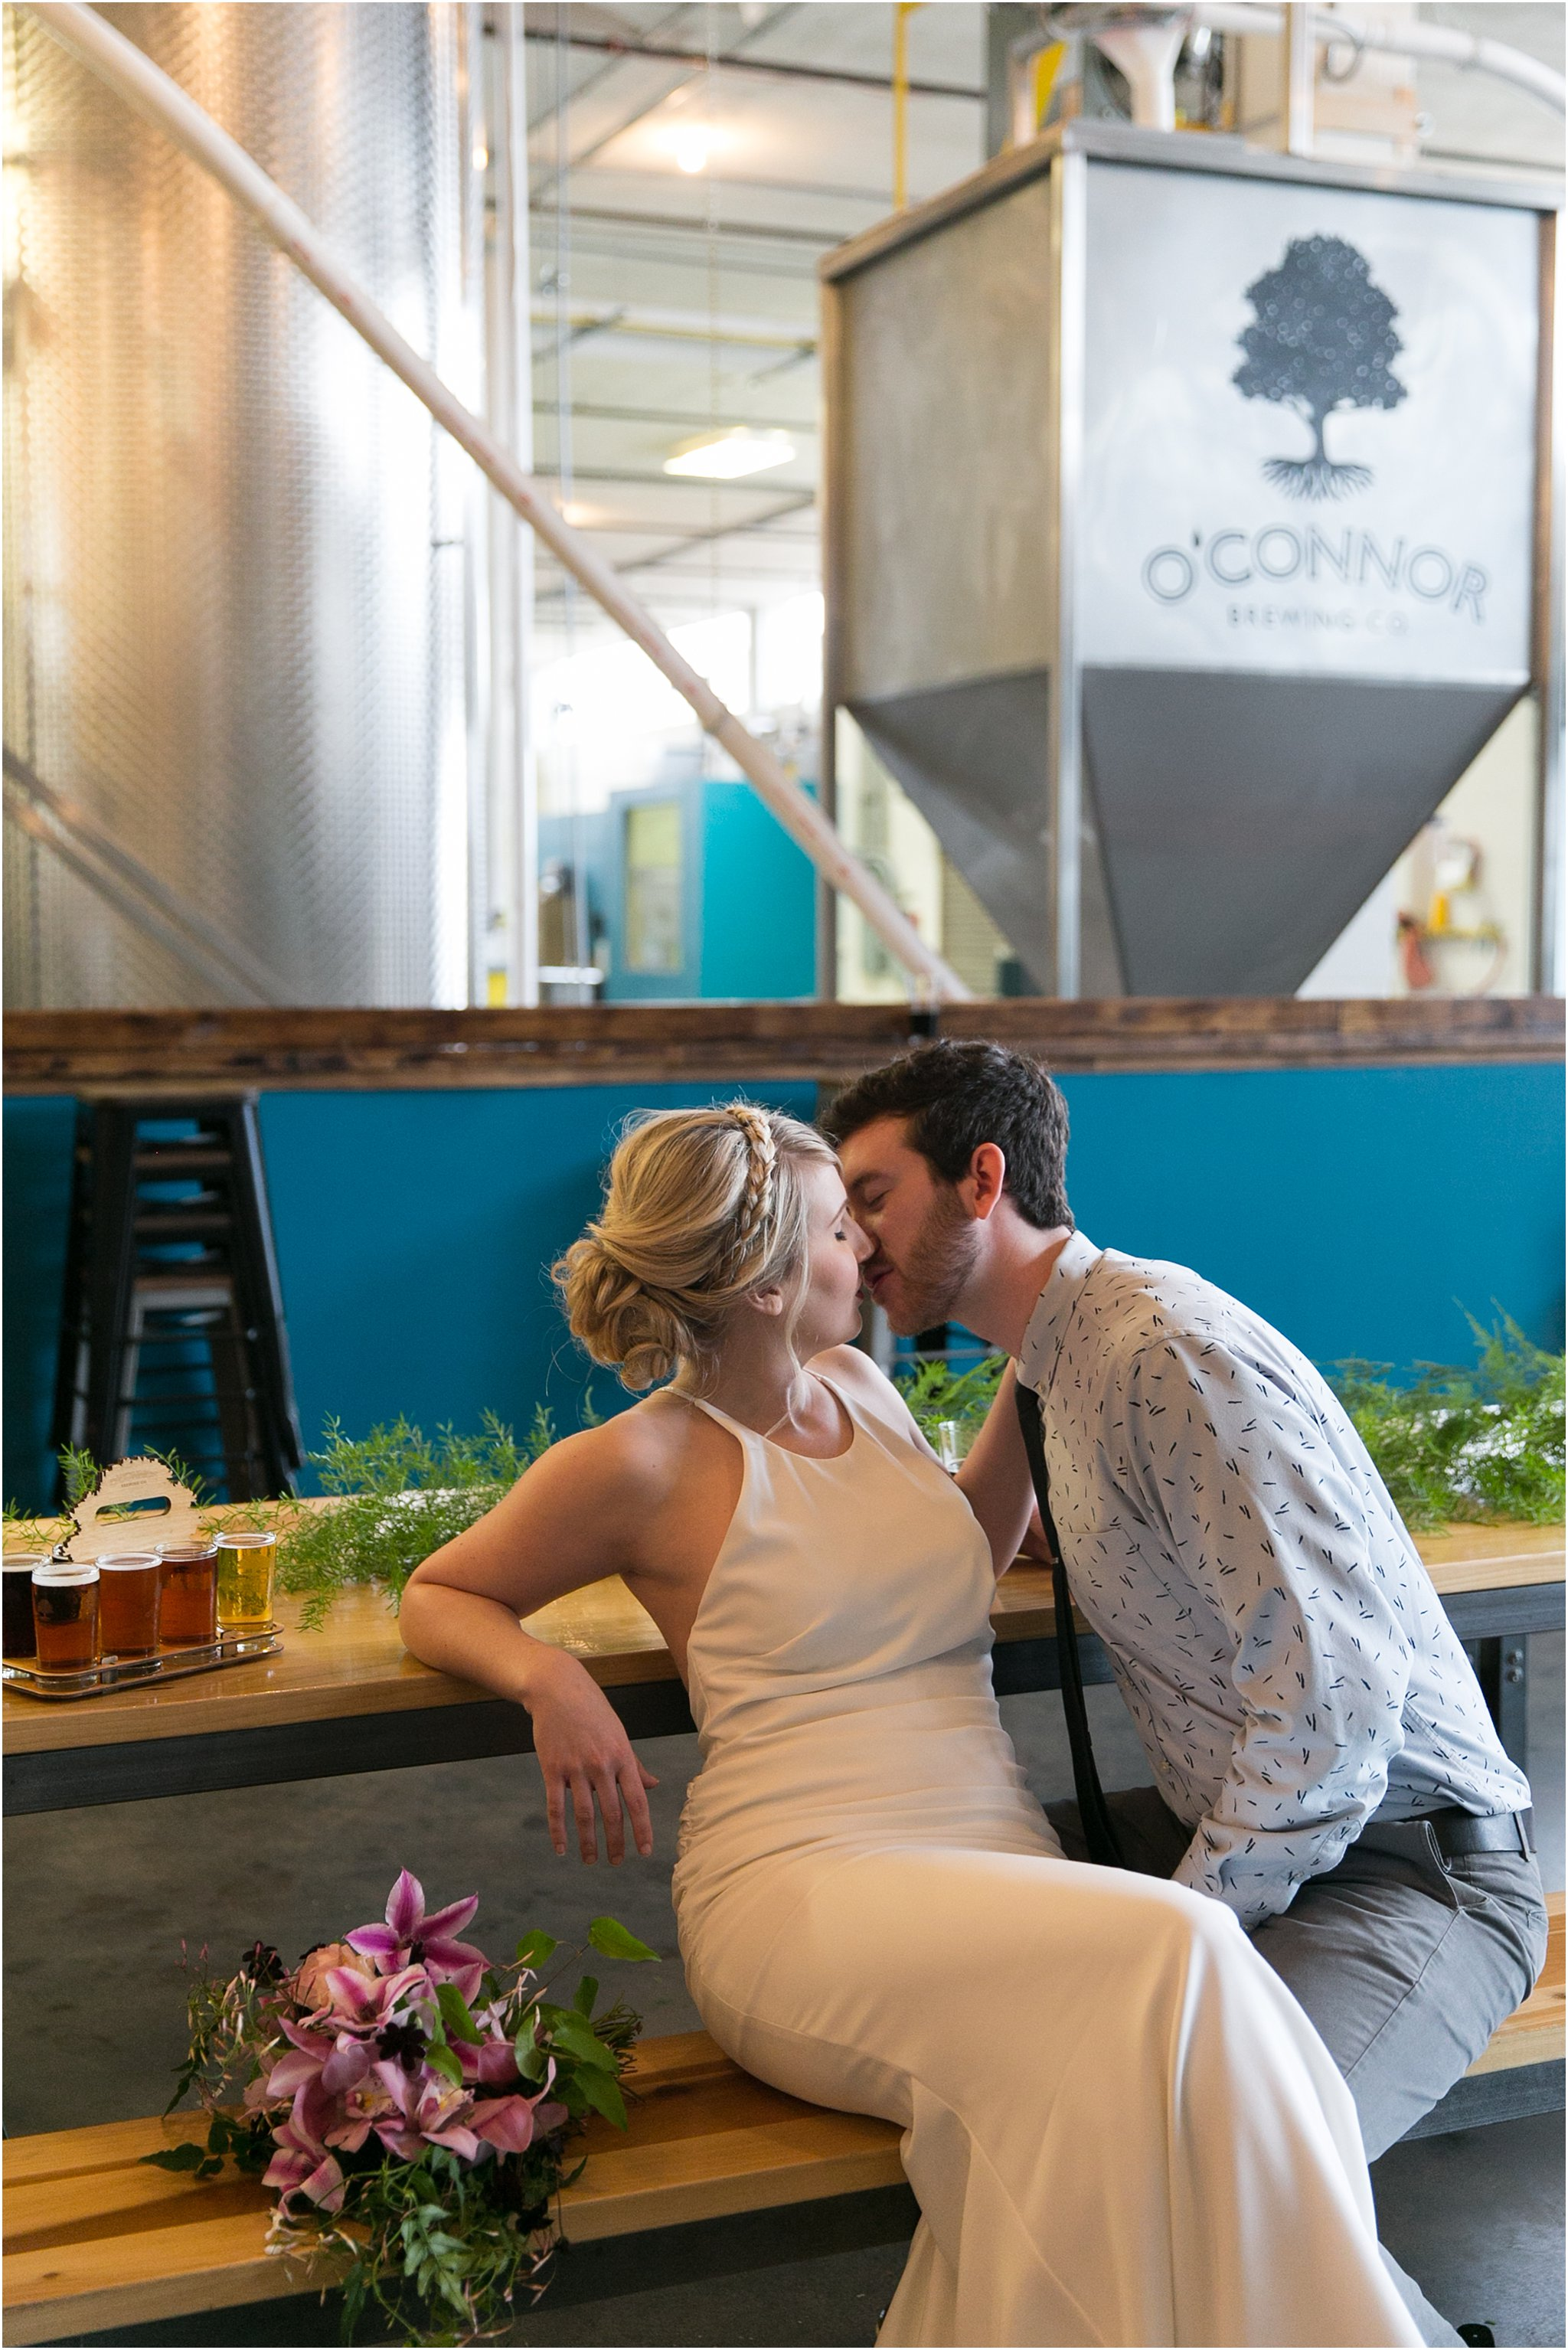 jessica_ryan_photography_oconnor_brewing_wedding_oconnor_brewing_co_norfolk_virginia_roost_flowers_blue_birds_garage__0831